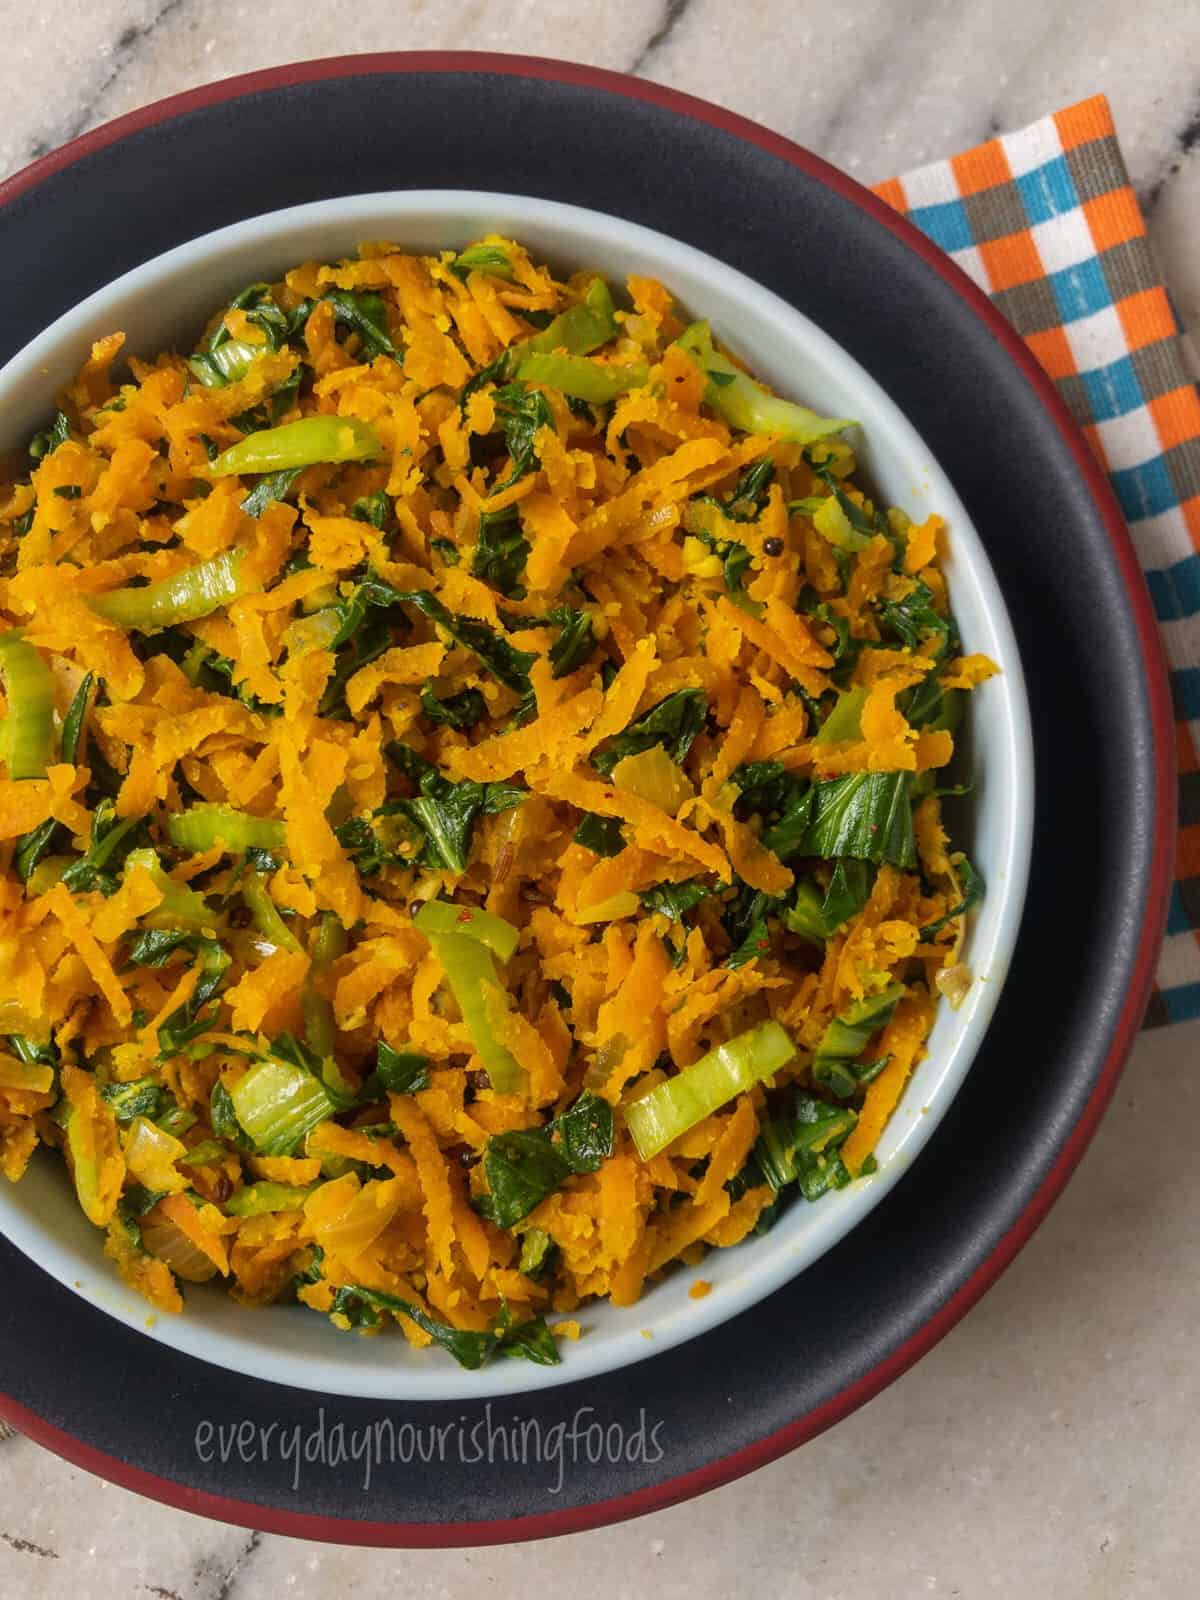 carrot curry using shredded carrots and bokchoy in a bowl.